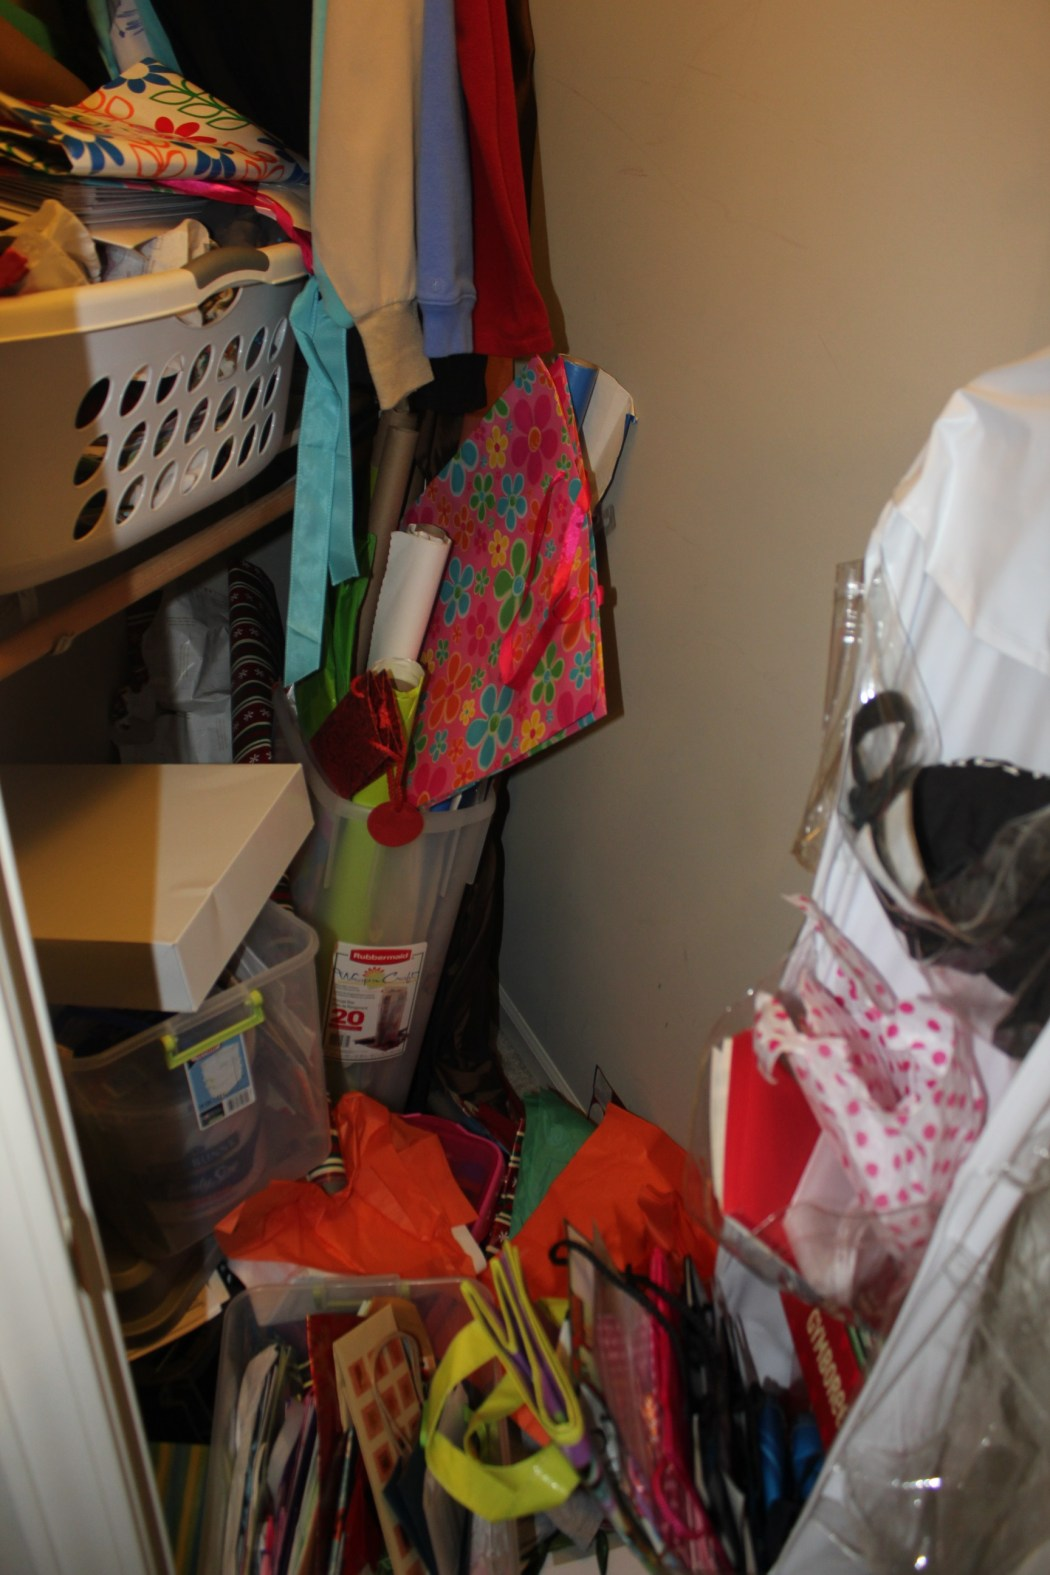 Congested Closet Turned Creative Corner - just inside the door